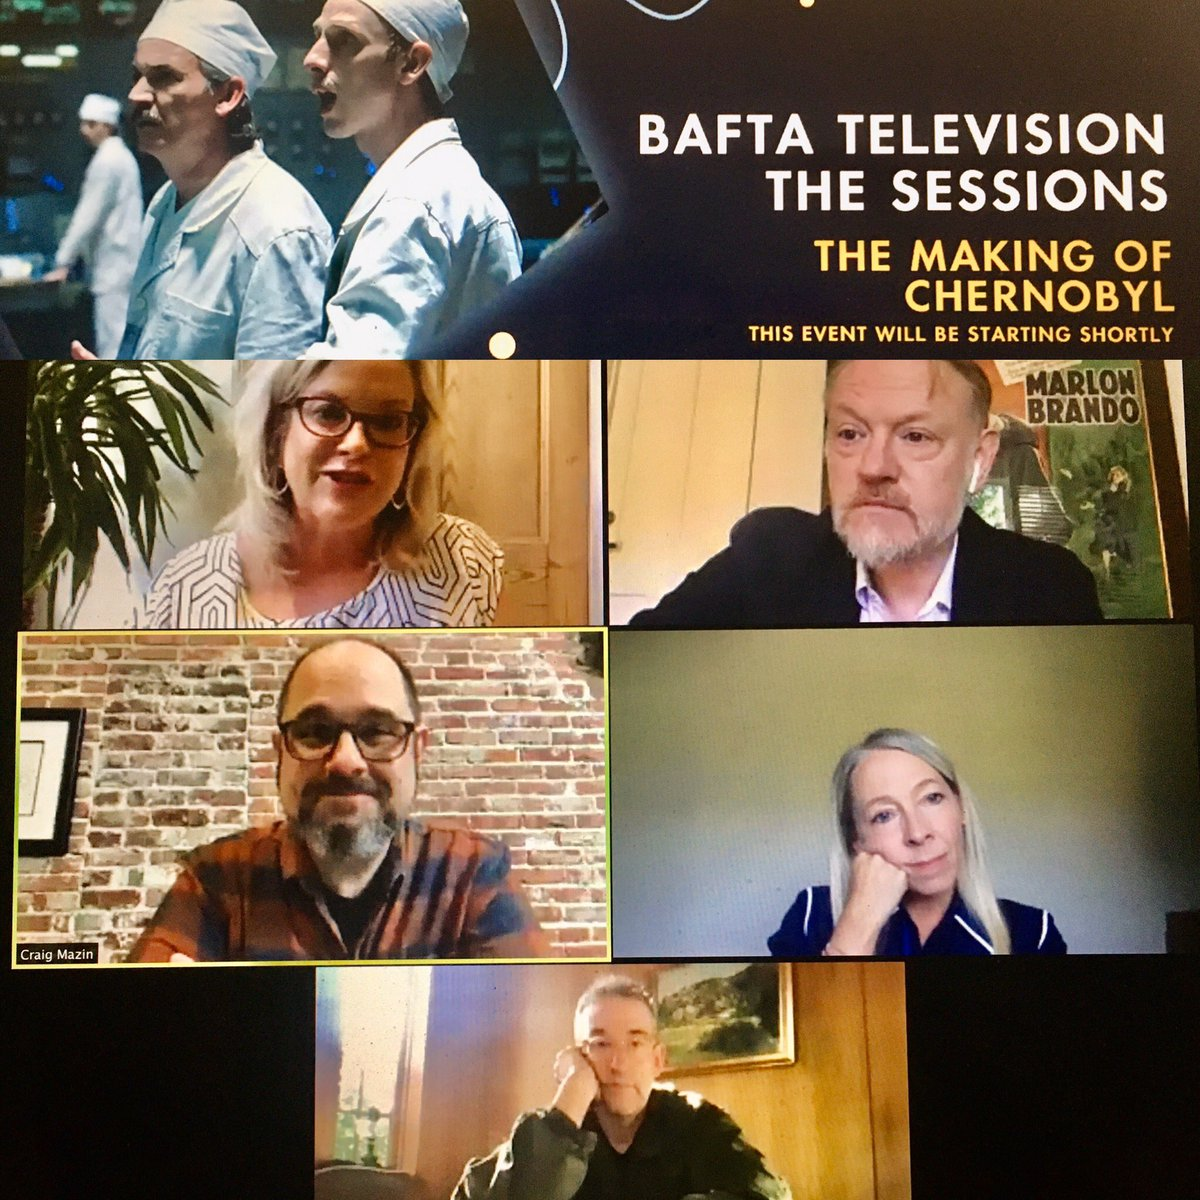 """What a great start to @BAFTA #baftatvsessions with The Making of #Chernobyl. So much insight from writer/ creator @clmazin, director @johanrenck, actor @JaredHarris, exec producer Jane Featherstone. Their considered verdict on fake accents: """"tremendously stupid"""" and """"bullshit!"""" https://t.co/LqvzWExn9w"""